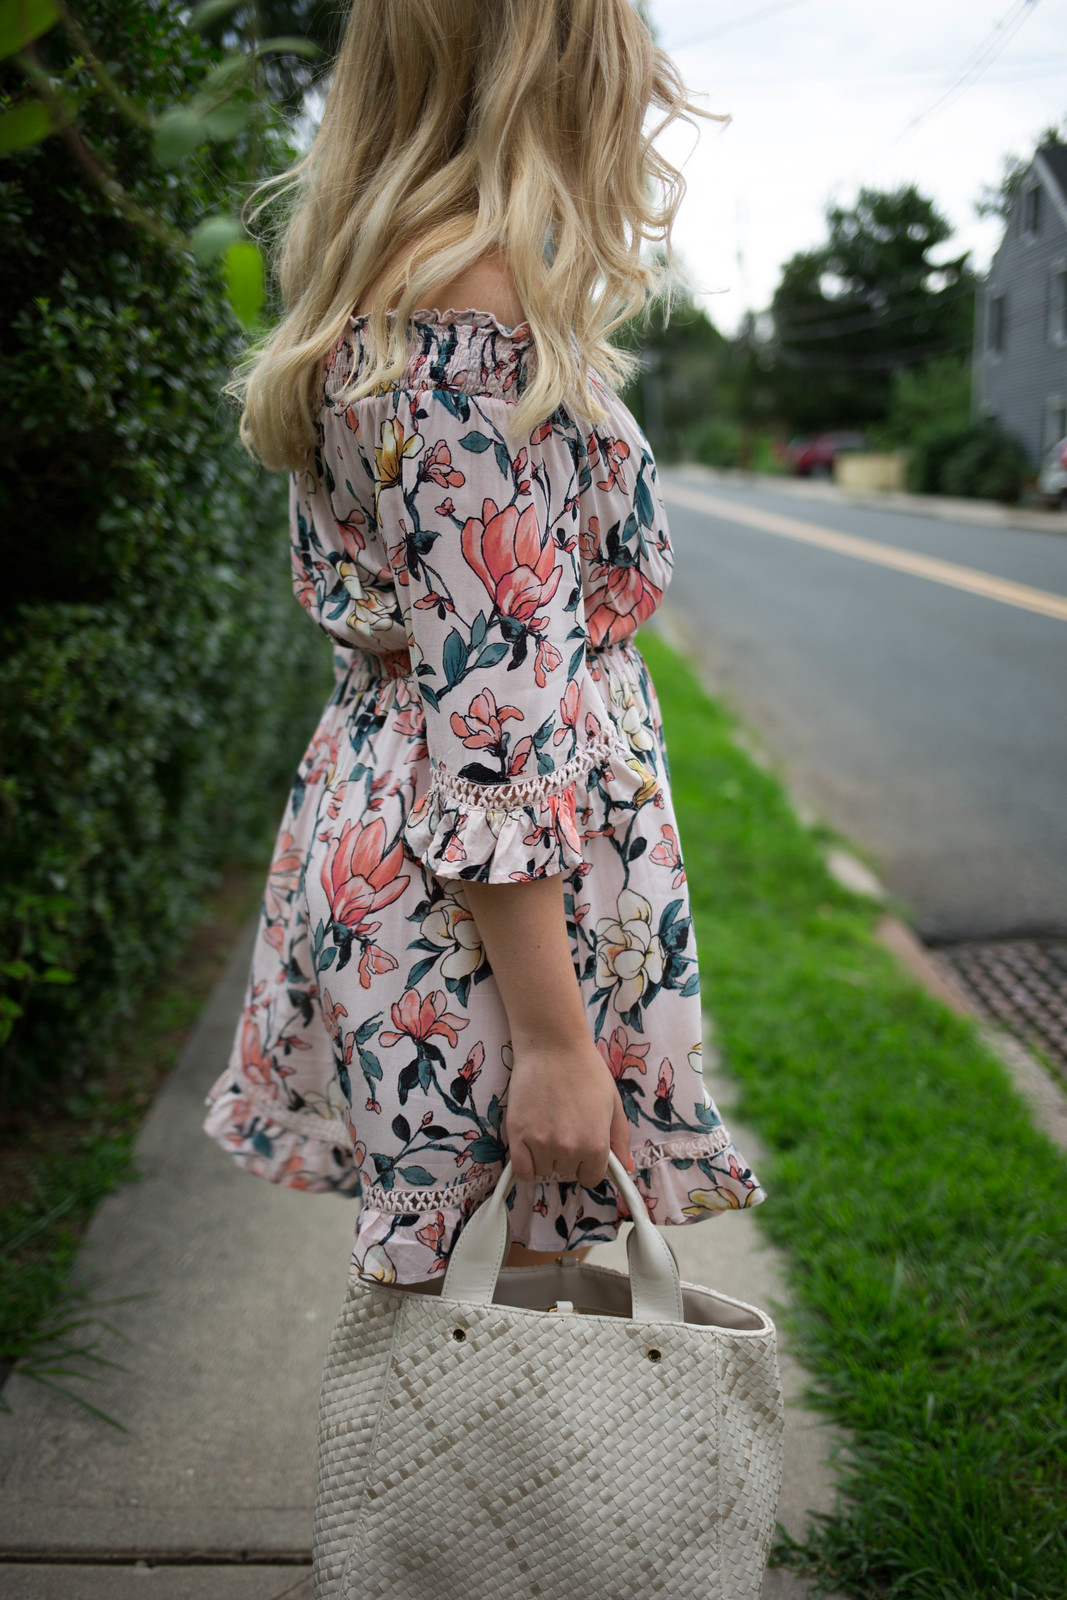 Lulu's HELLO, DARLING BLUSH PINK FLORAL PRINT OFF-THE-SHOULDER DRESS